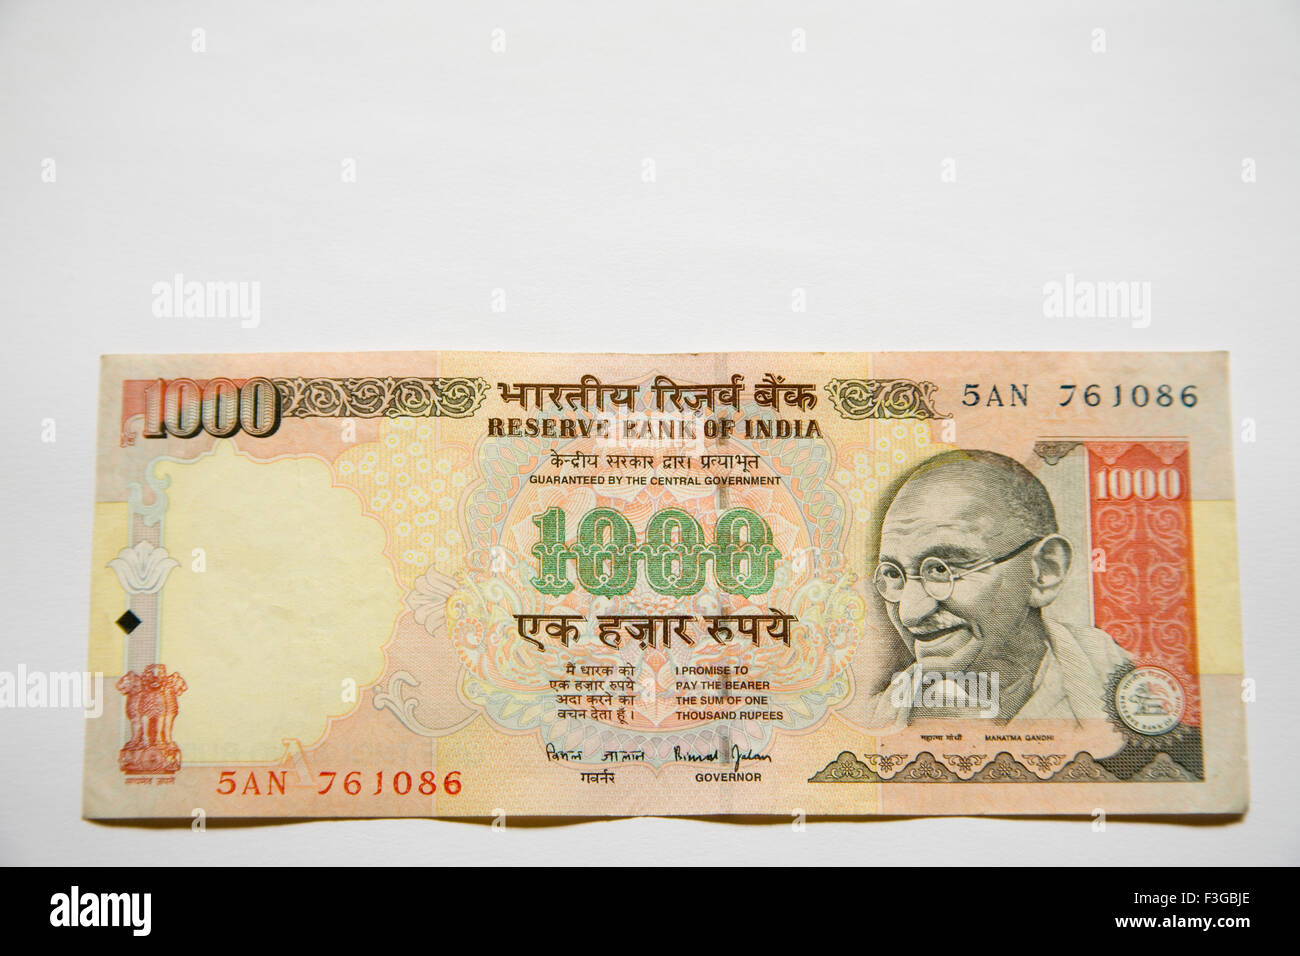 1000 Rupee Note Stock Photos & 1000 Rupee Note Stock Images